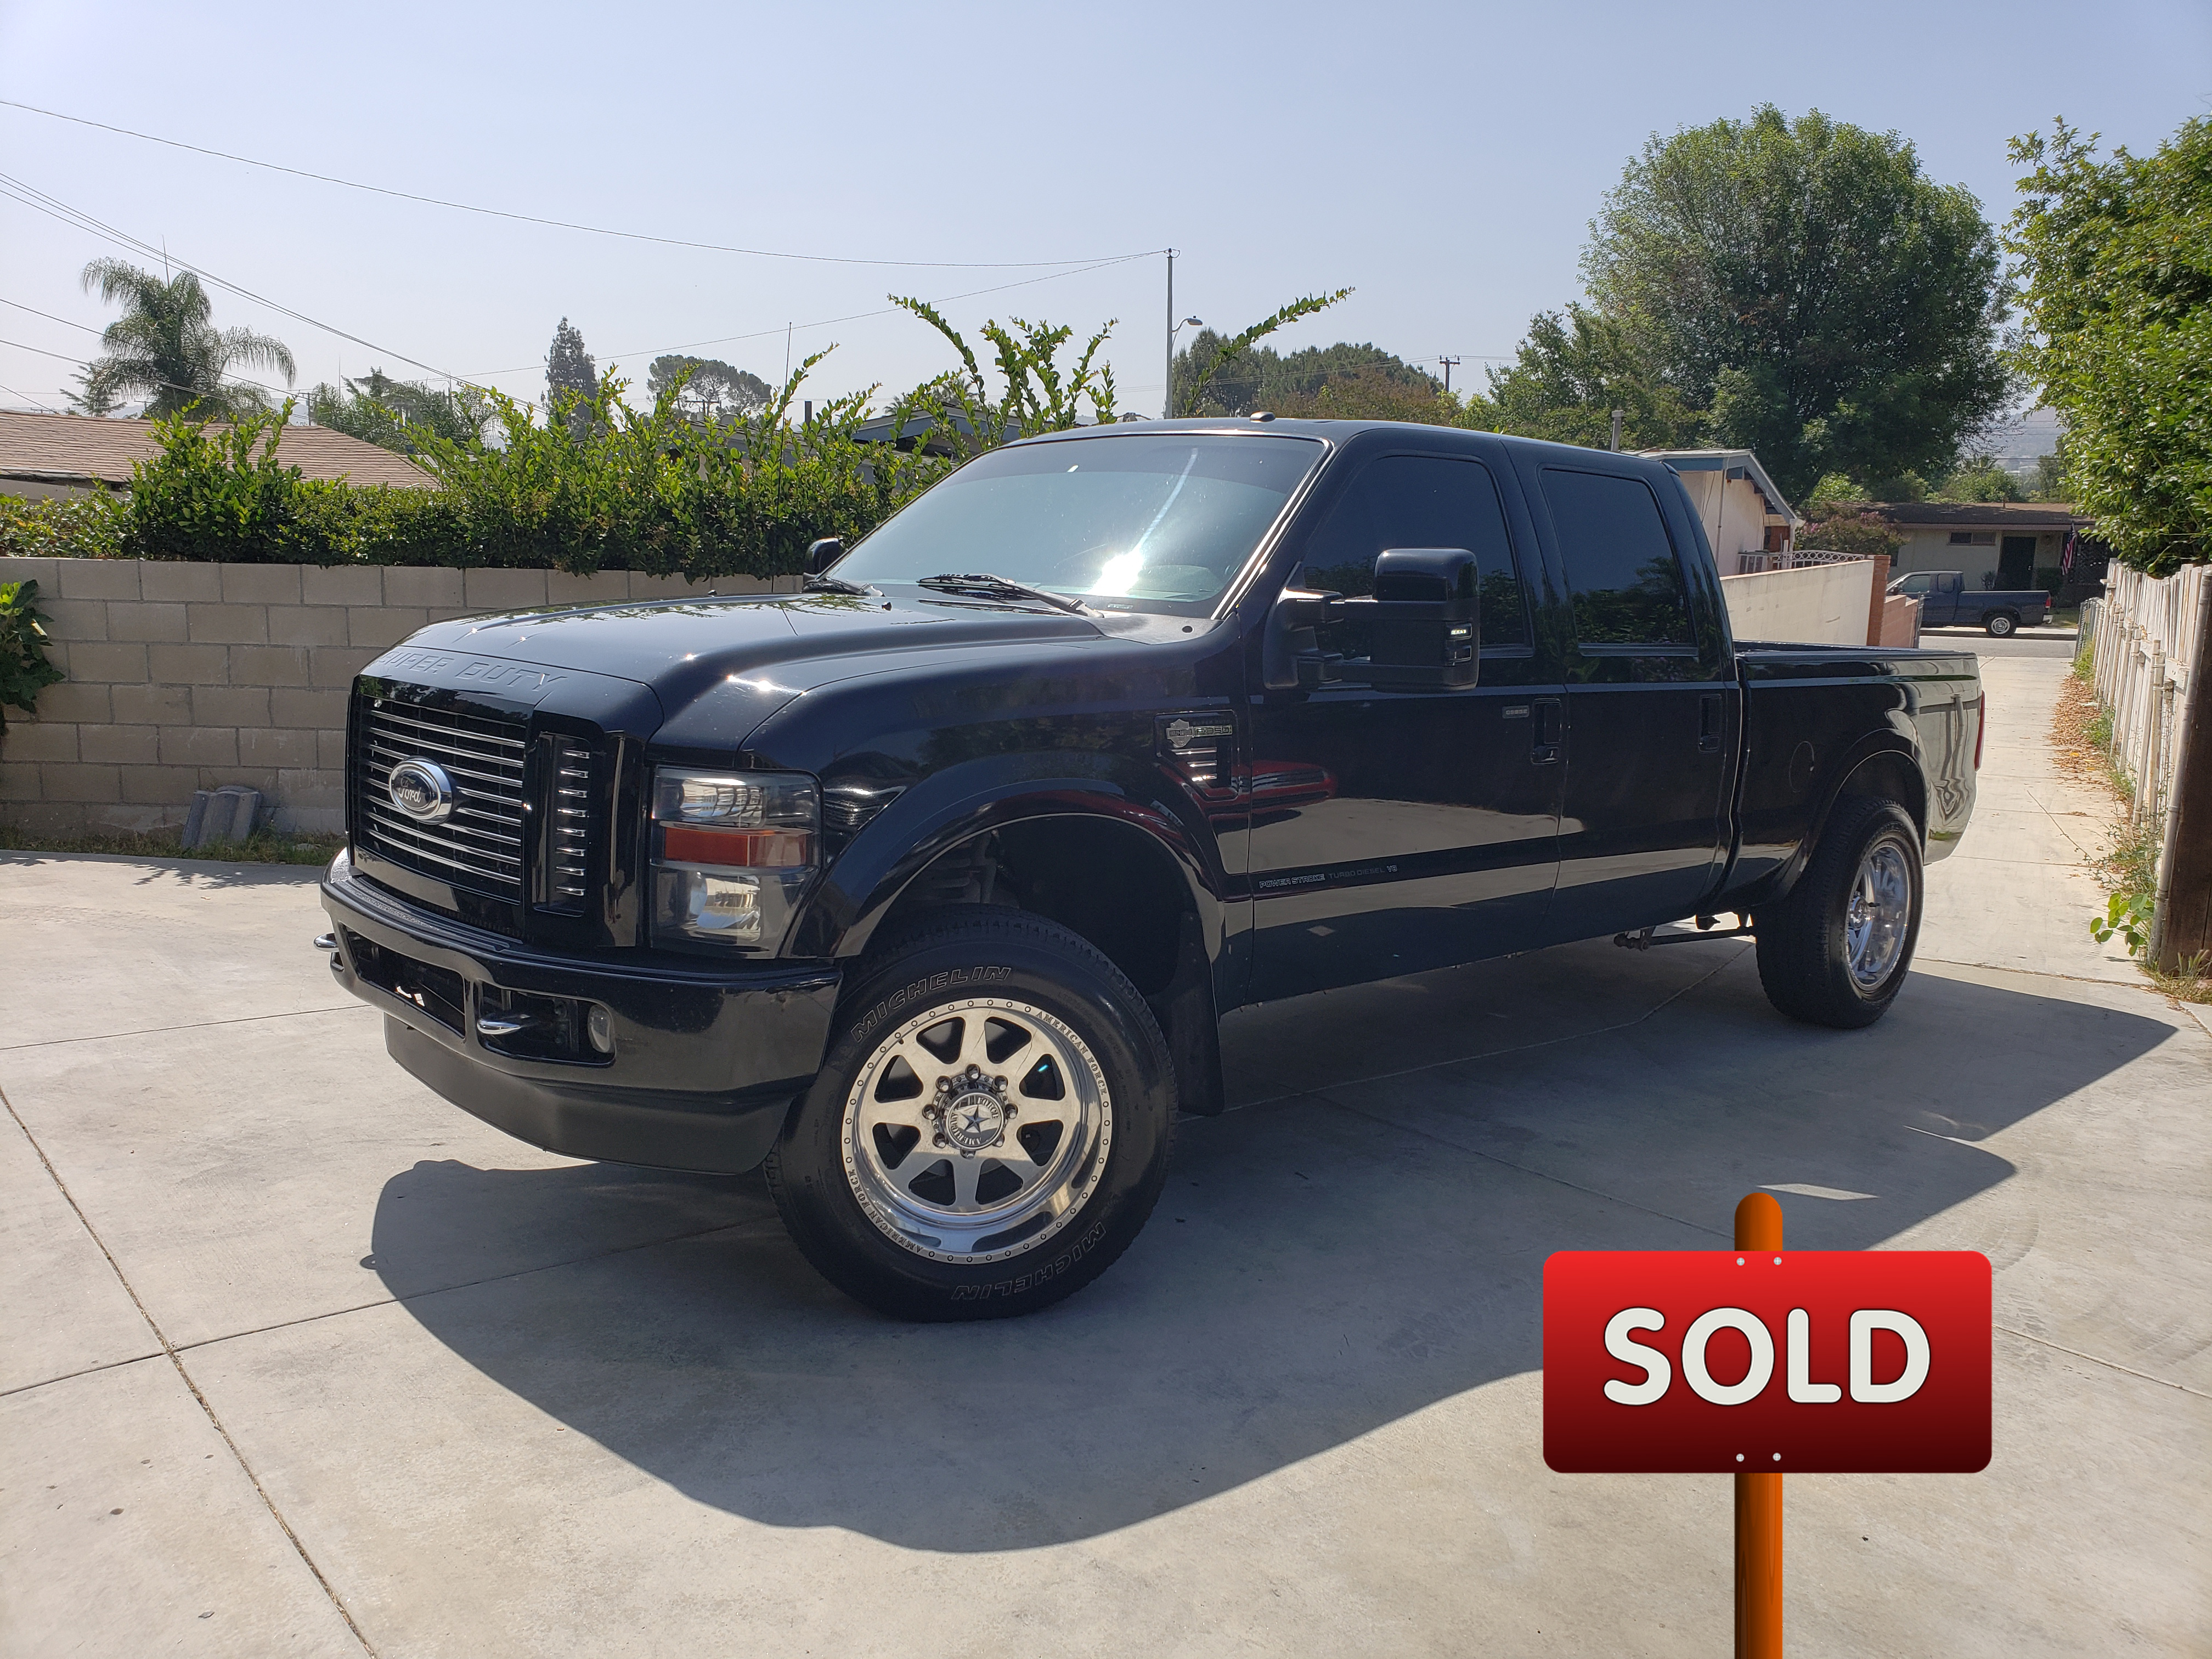 2010 Ford Truck For Sale